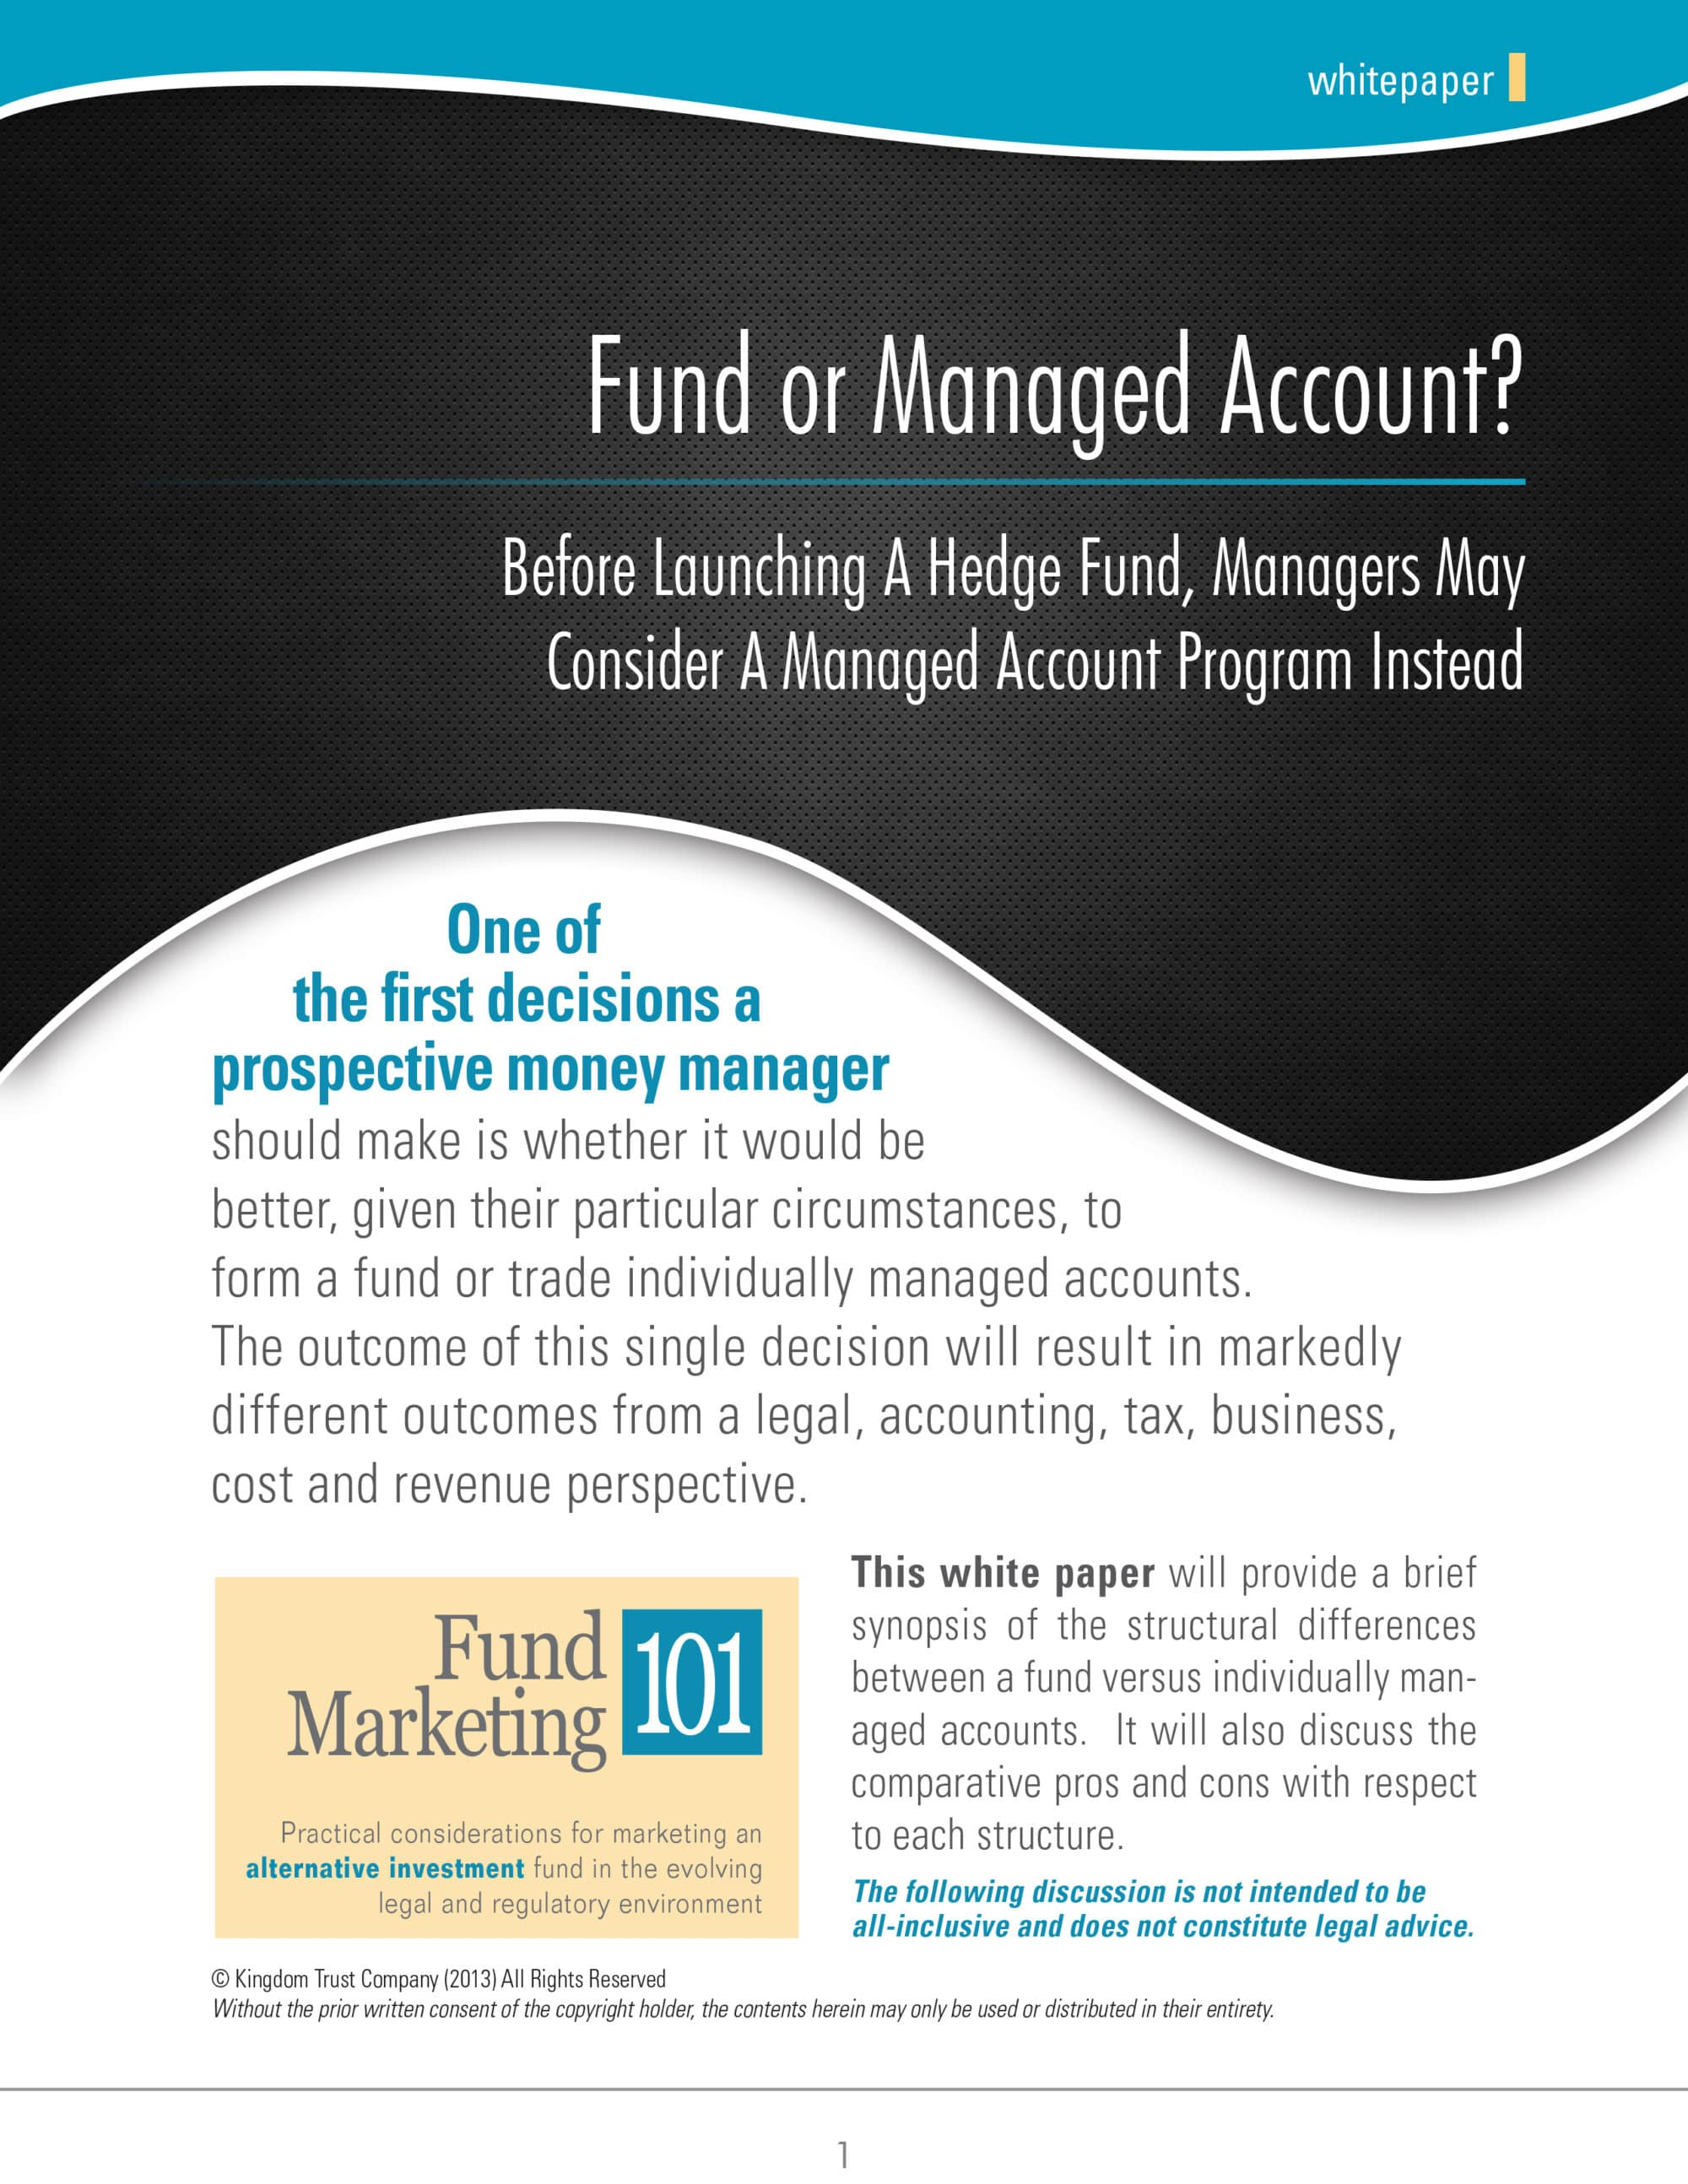 Fund or Managed Account